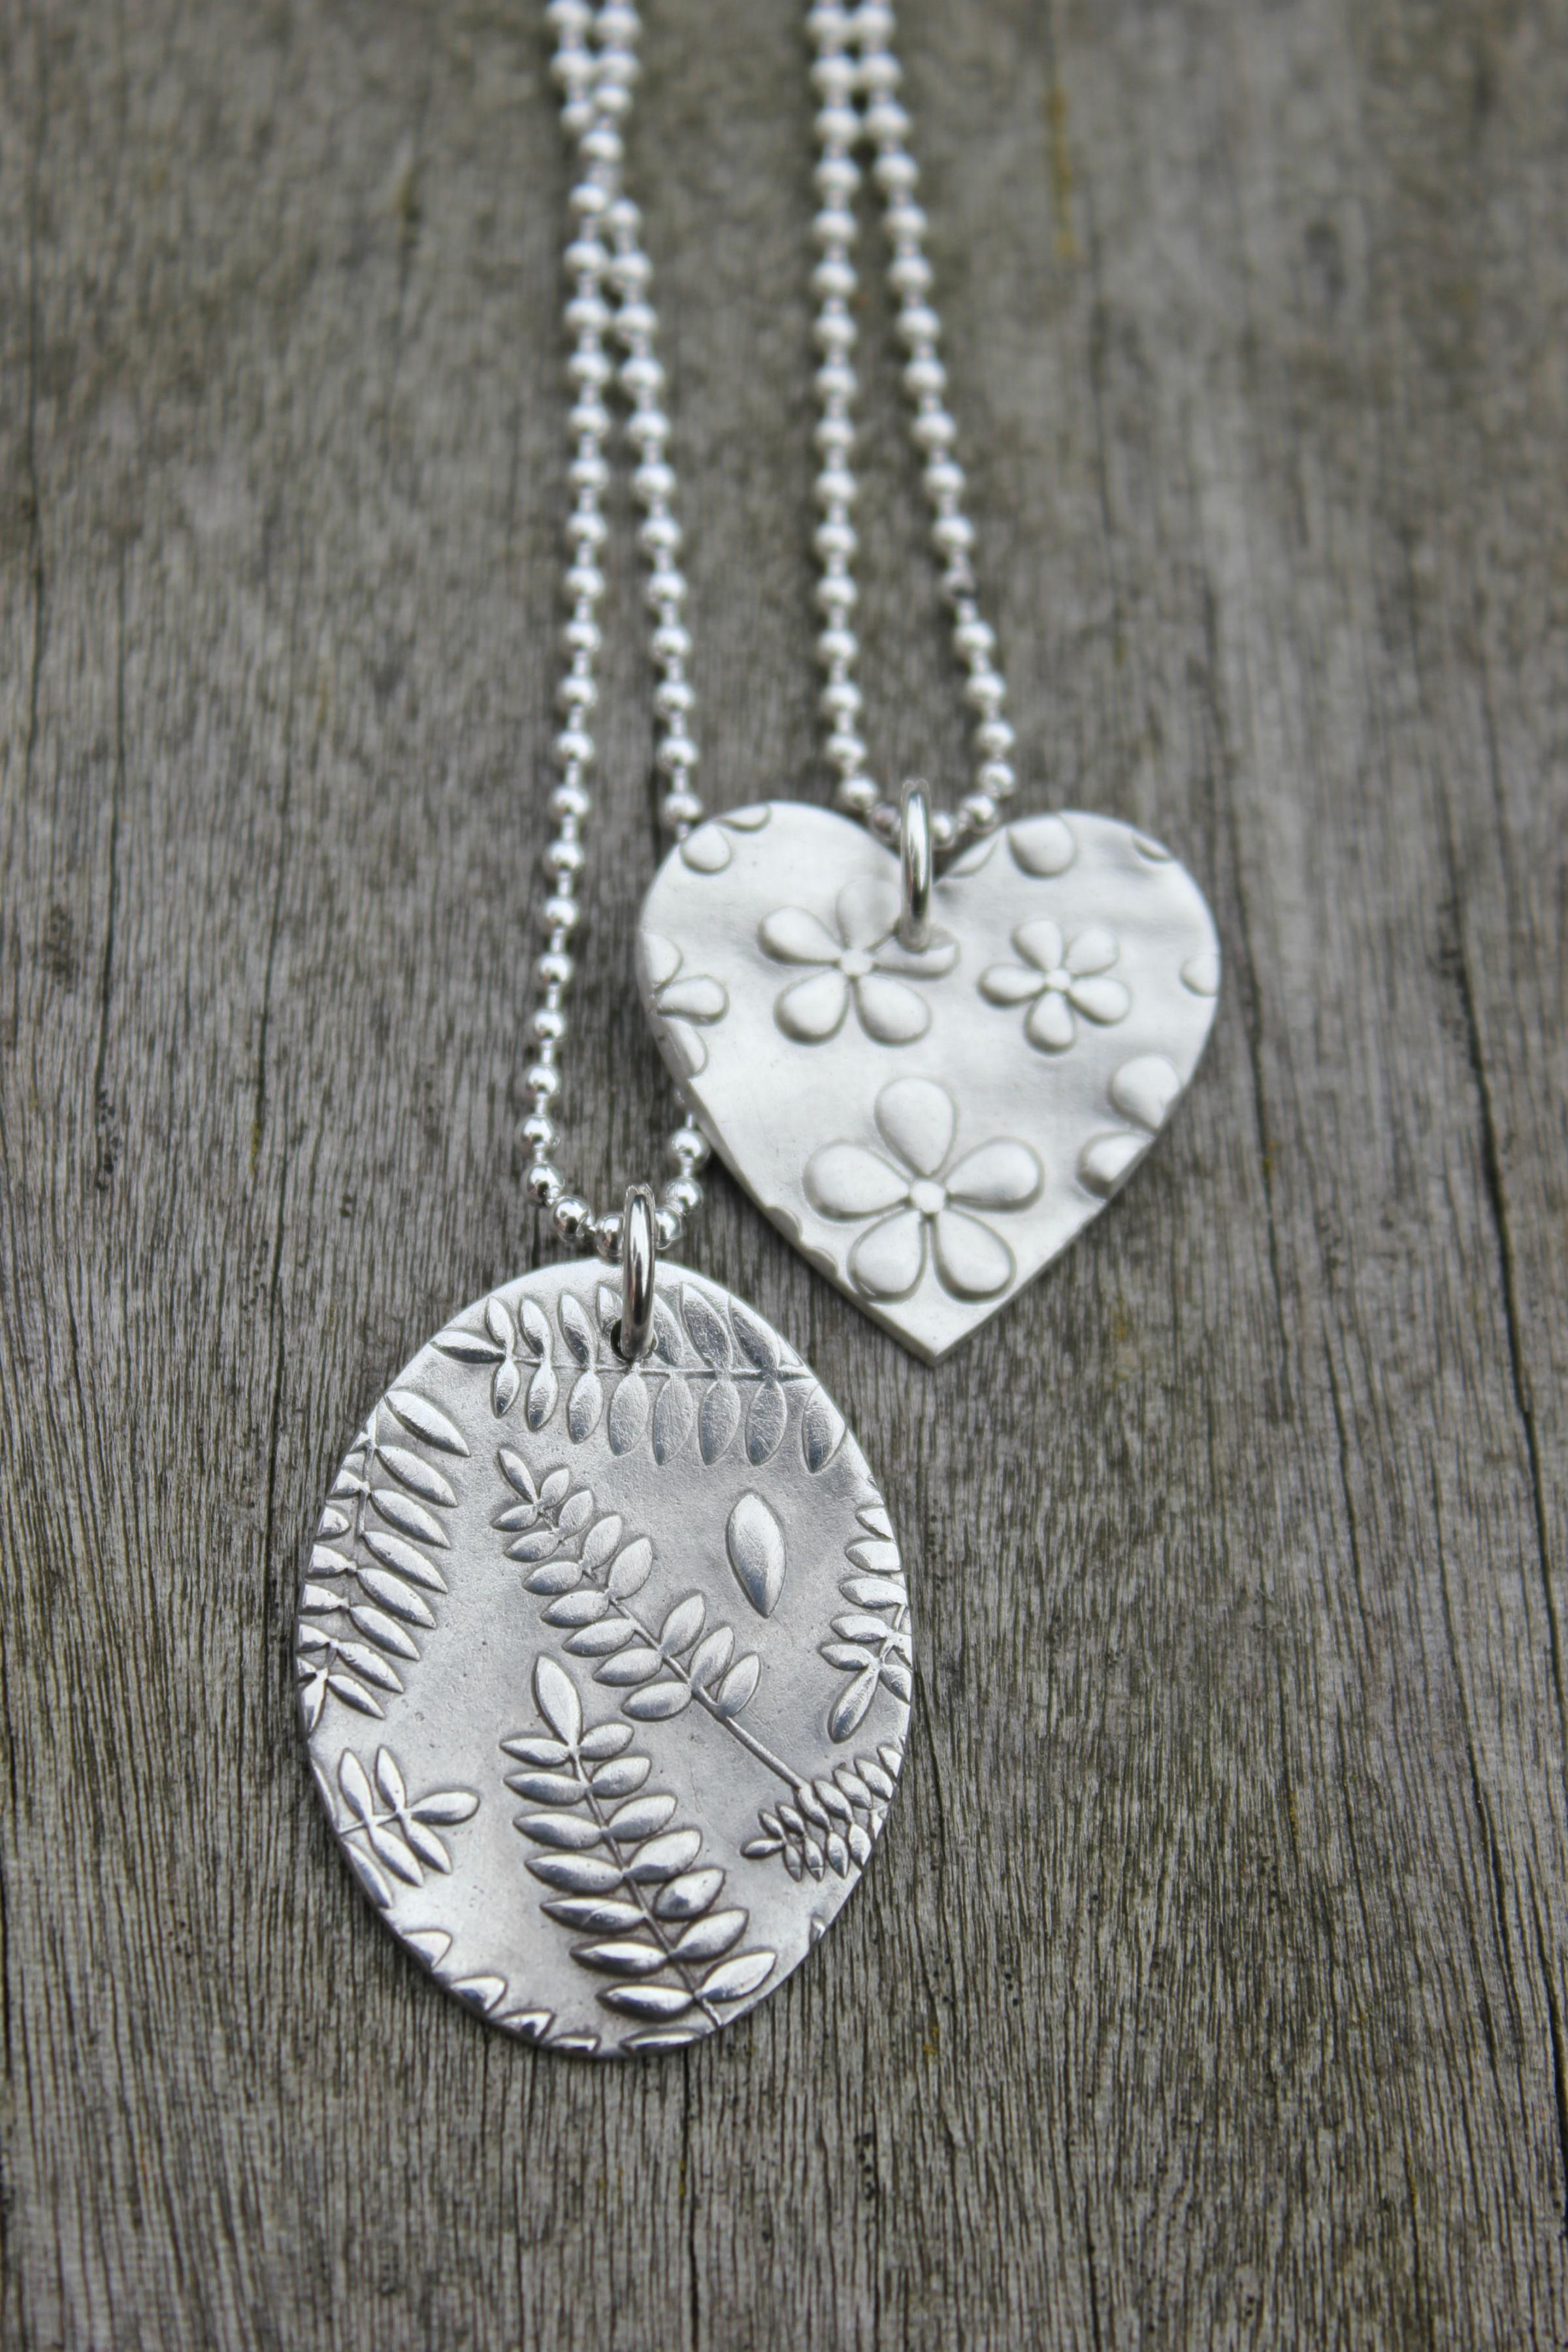 Make your own silver clay nature jewellery